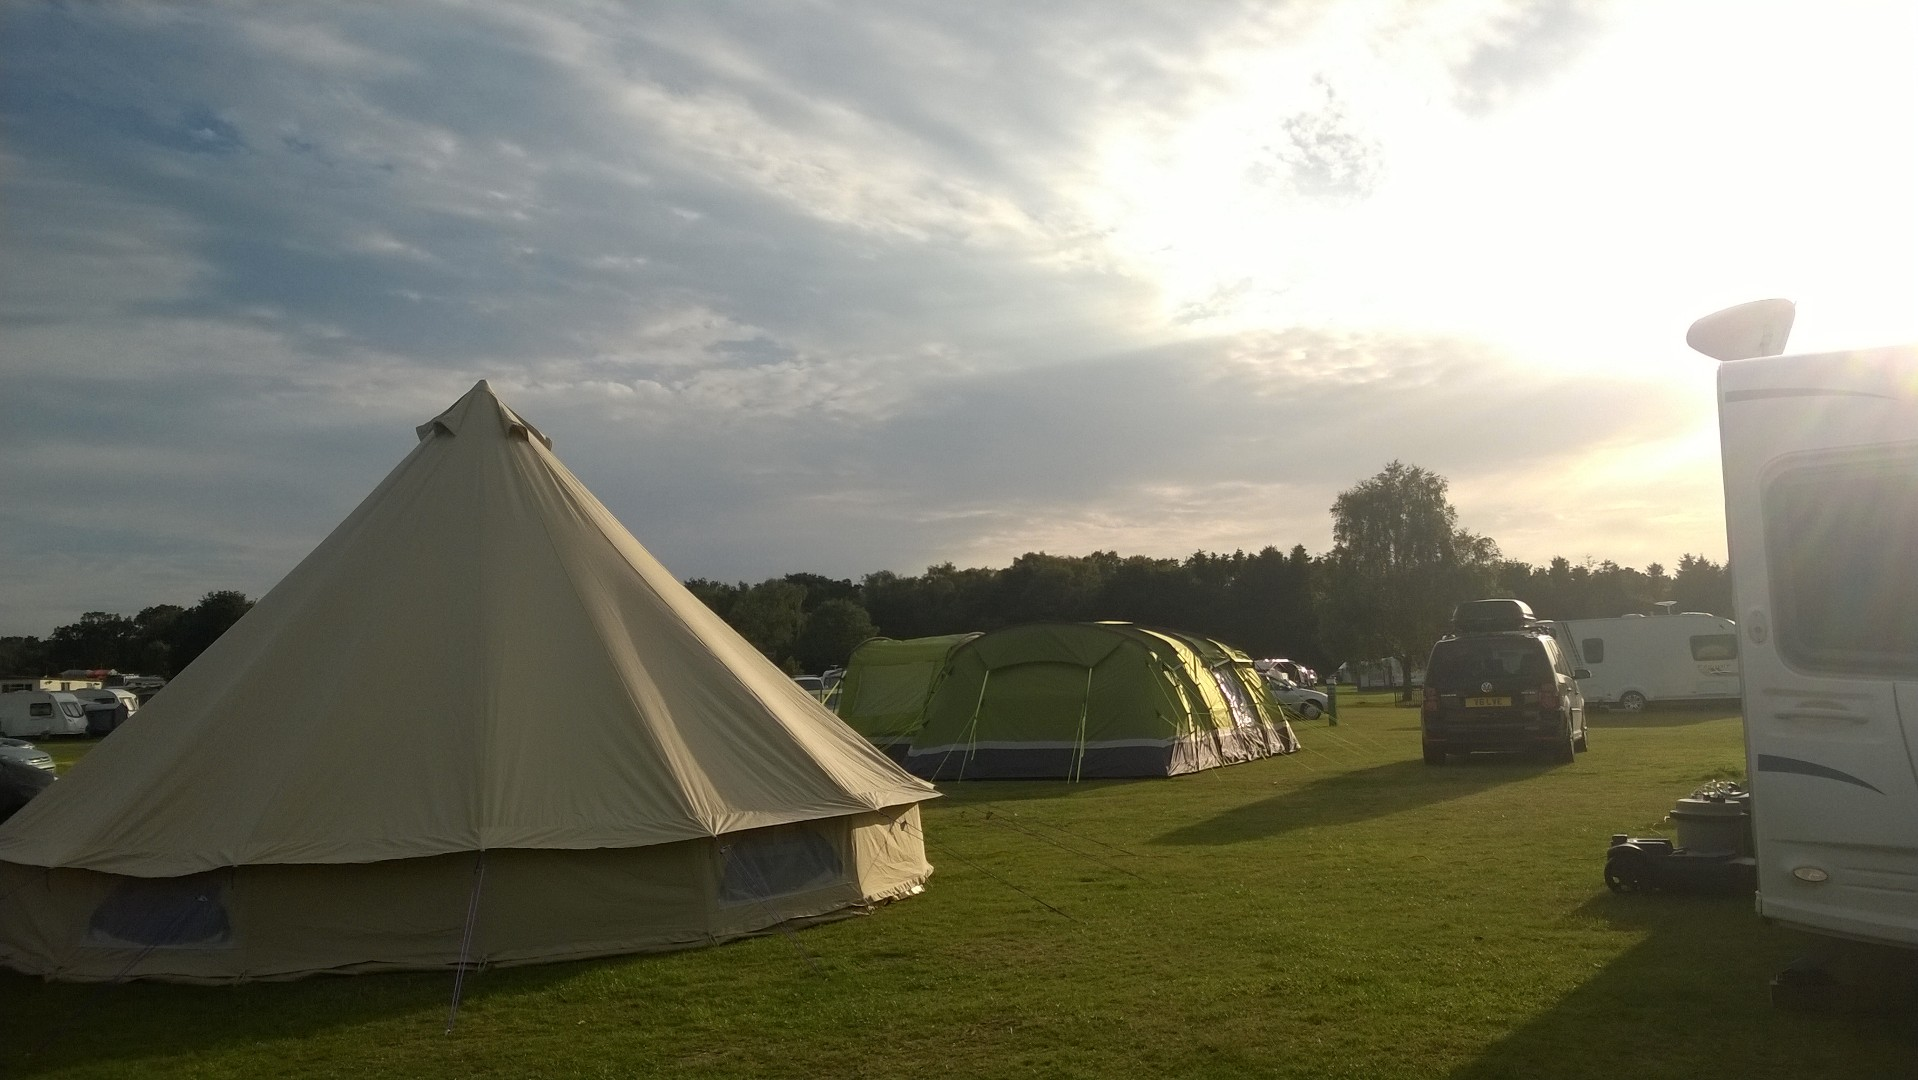 Tents and Caravans pitched in August